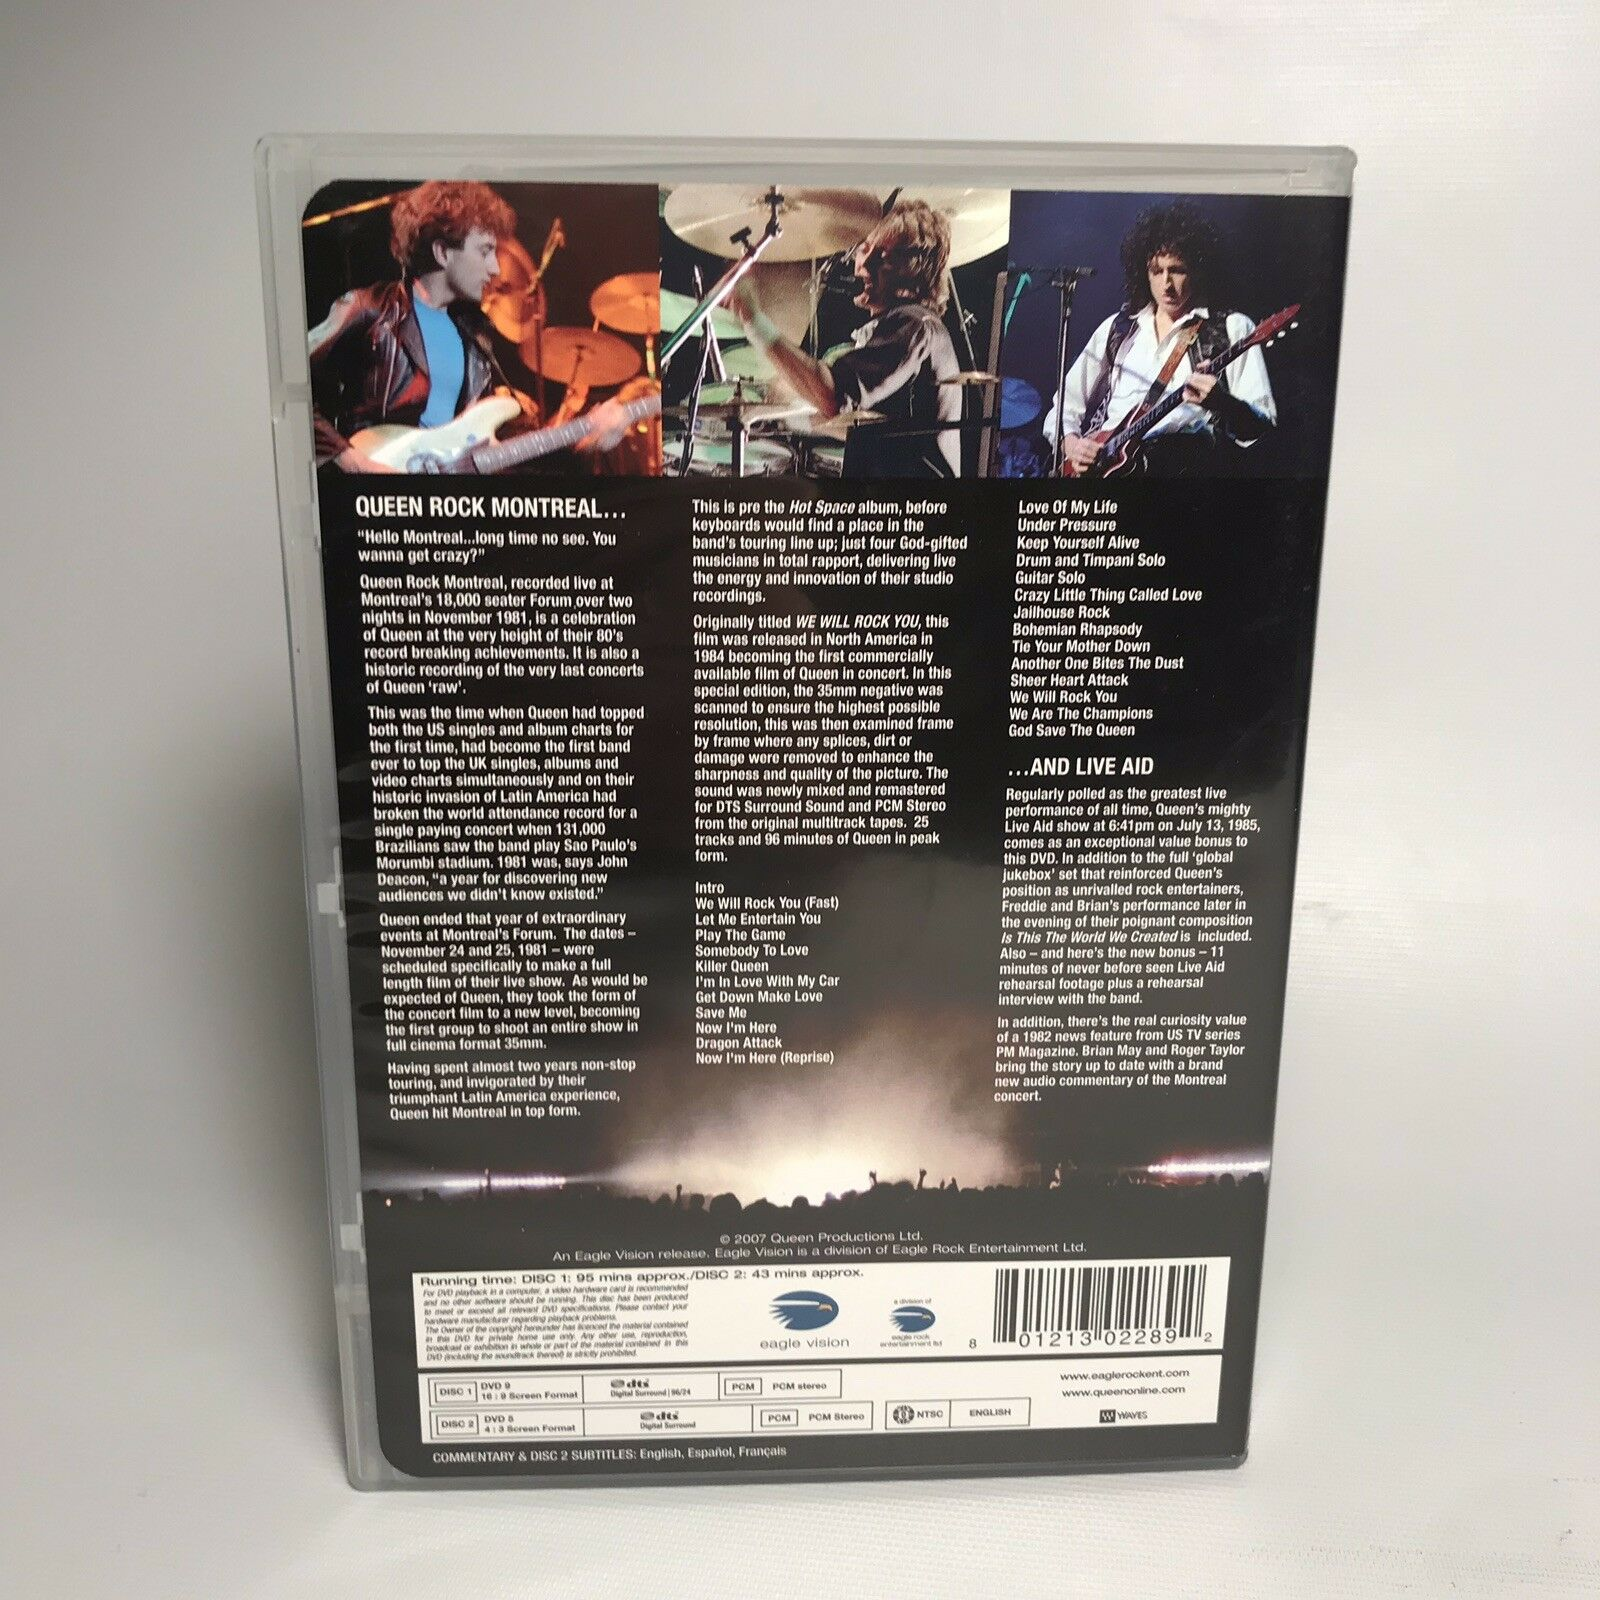 Queen Rock Montreal Live Aid Dvd 2007 2 Disc Set Special Edition Including Live Aid Concert For Sale Online Ebay